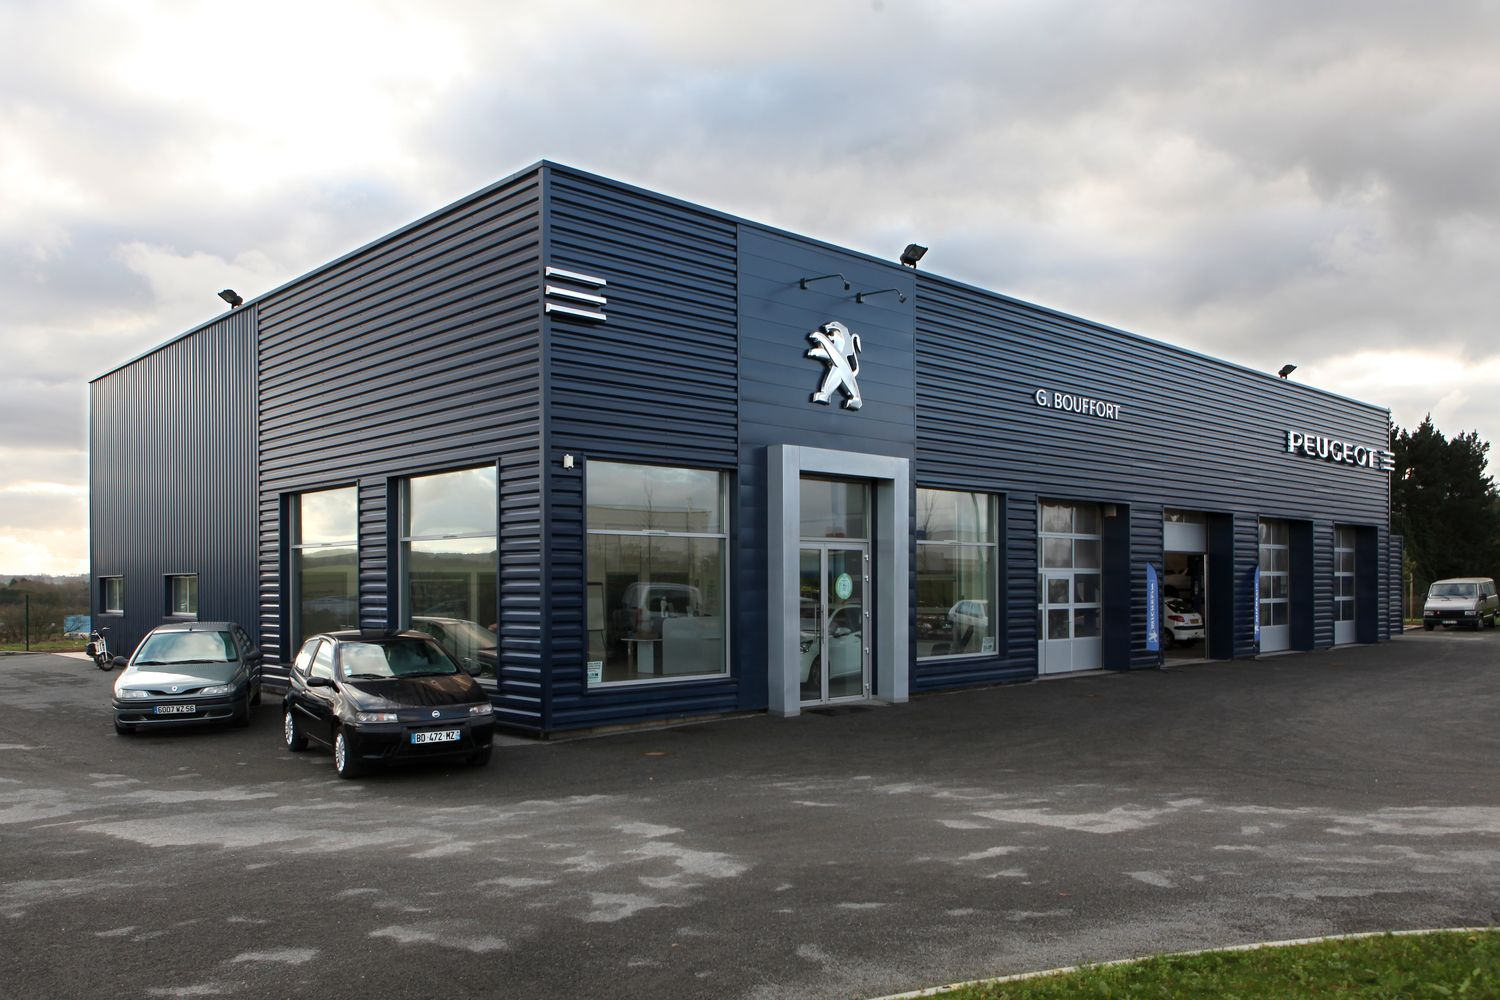 Ace ing nierie abc contractant r alisations peugeot for Garage peugeot montfort